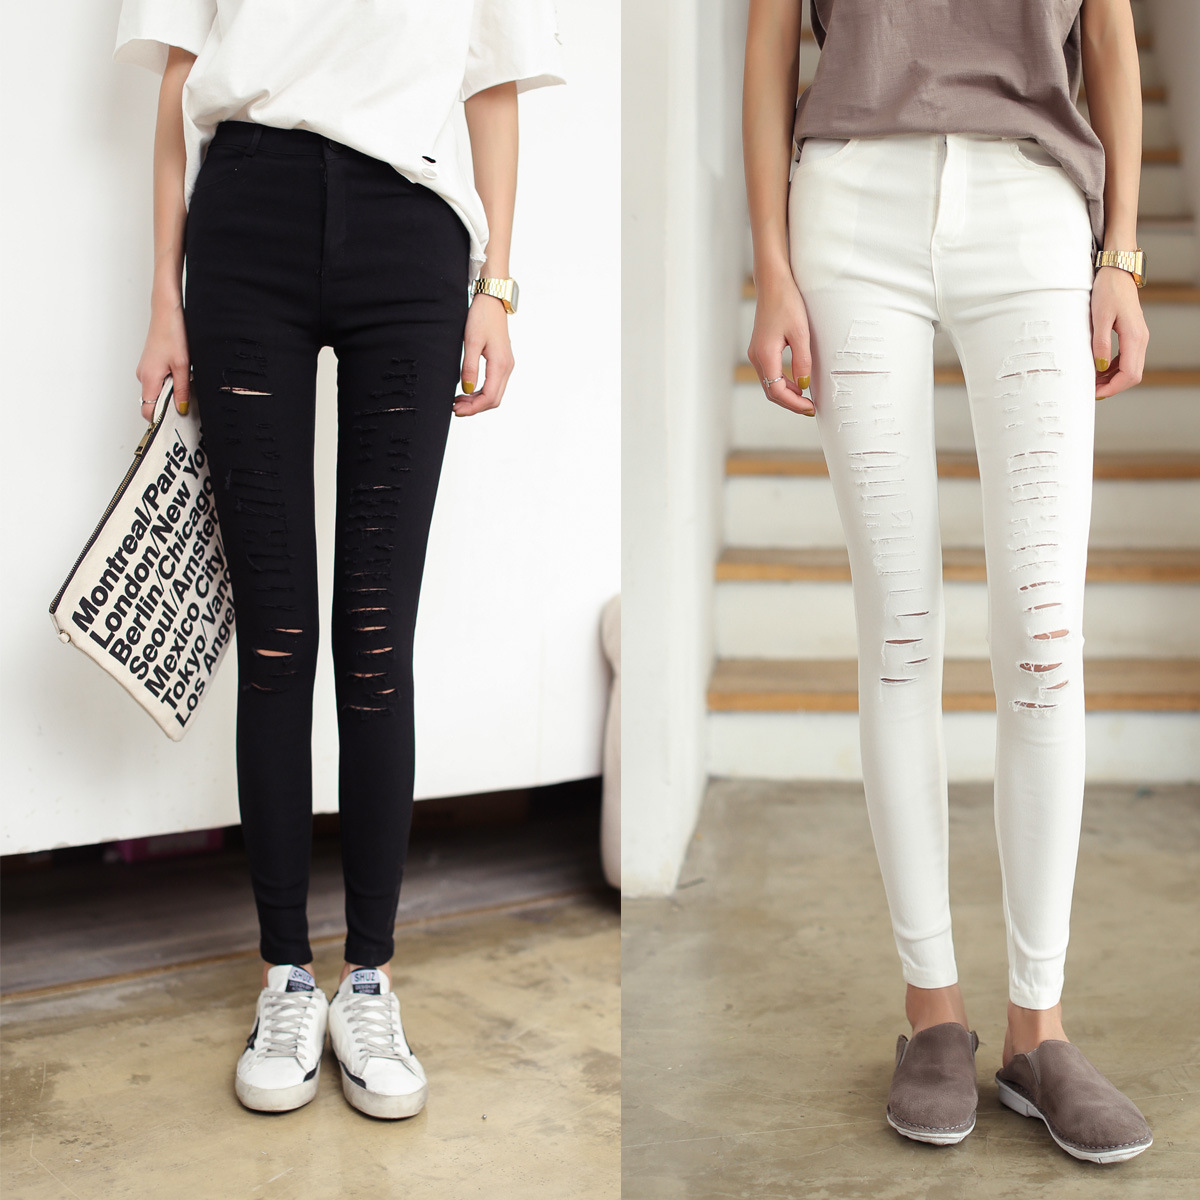 2017 Fashion Skinny Jeans Women Ripped Jeans Denim Pants Holes Destroyed Black White Stretch Pencil Pants